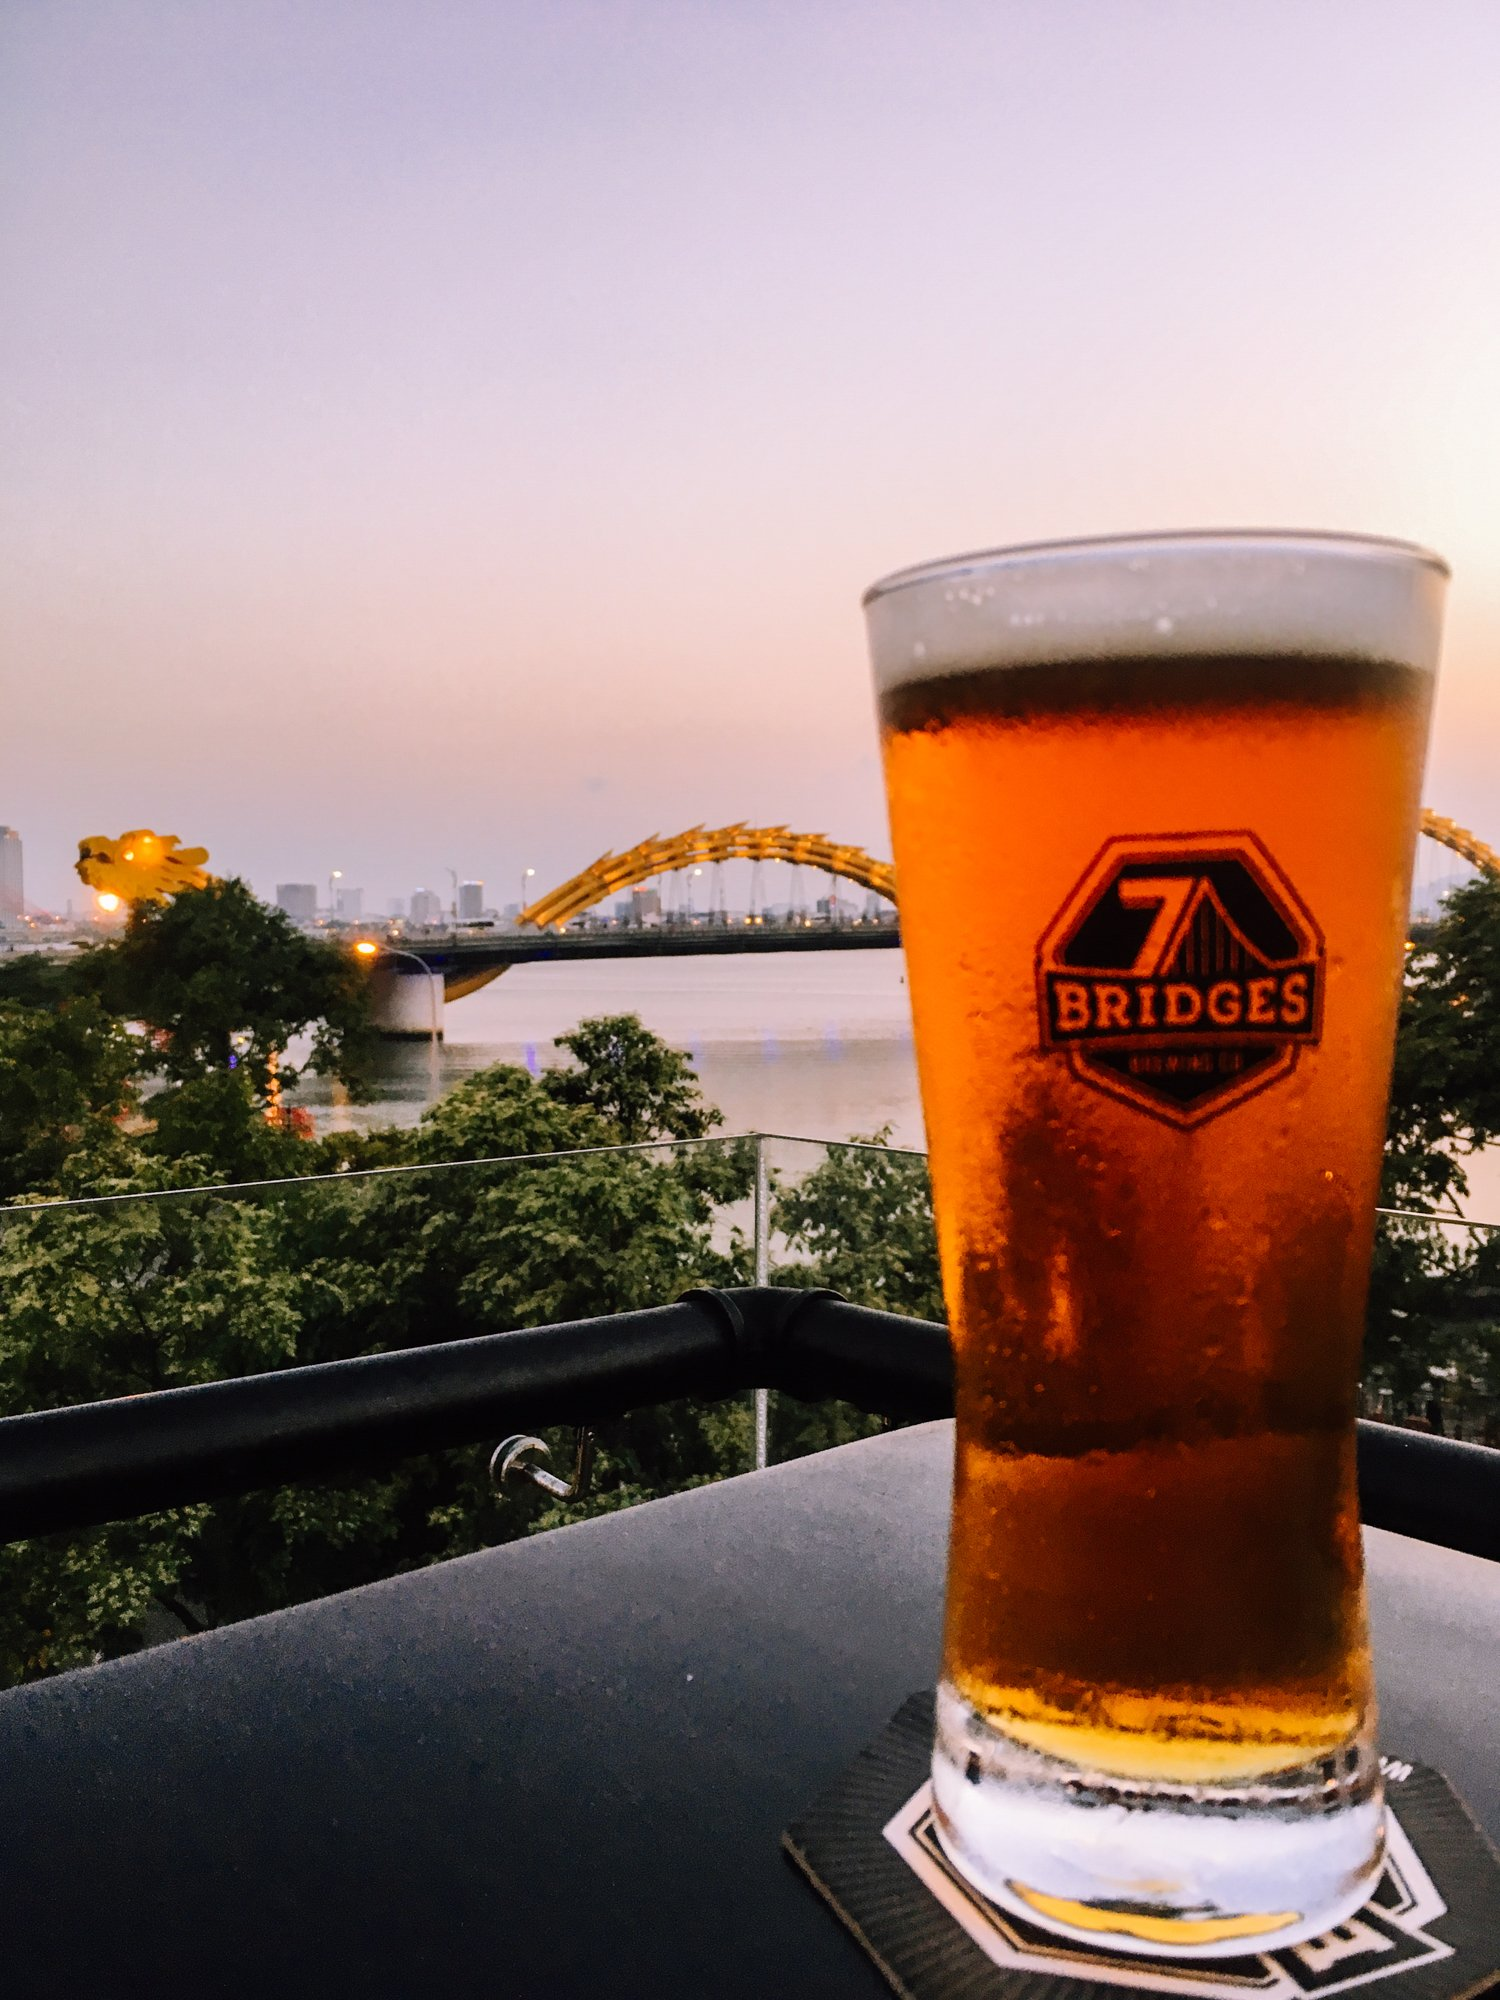 drinking a red ale at 7 Bridges Brewery in Da Nang Vietnam with a view of the Dragon Bridge